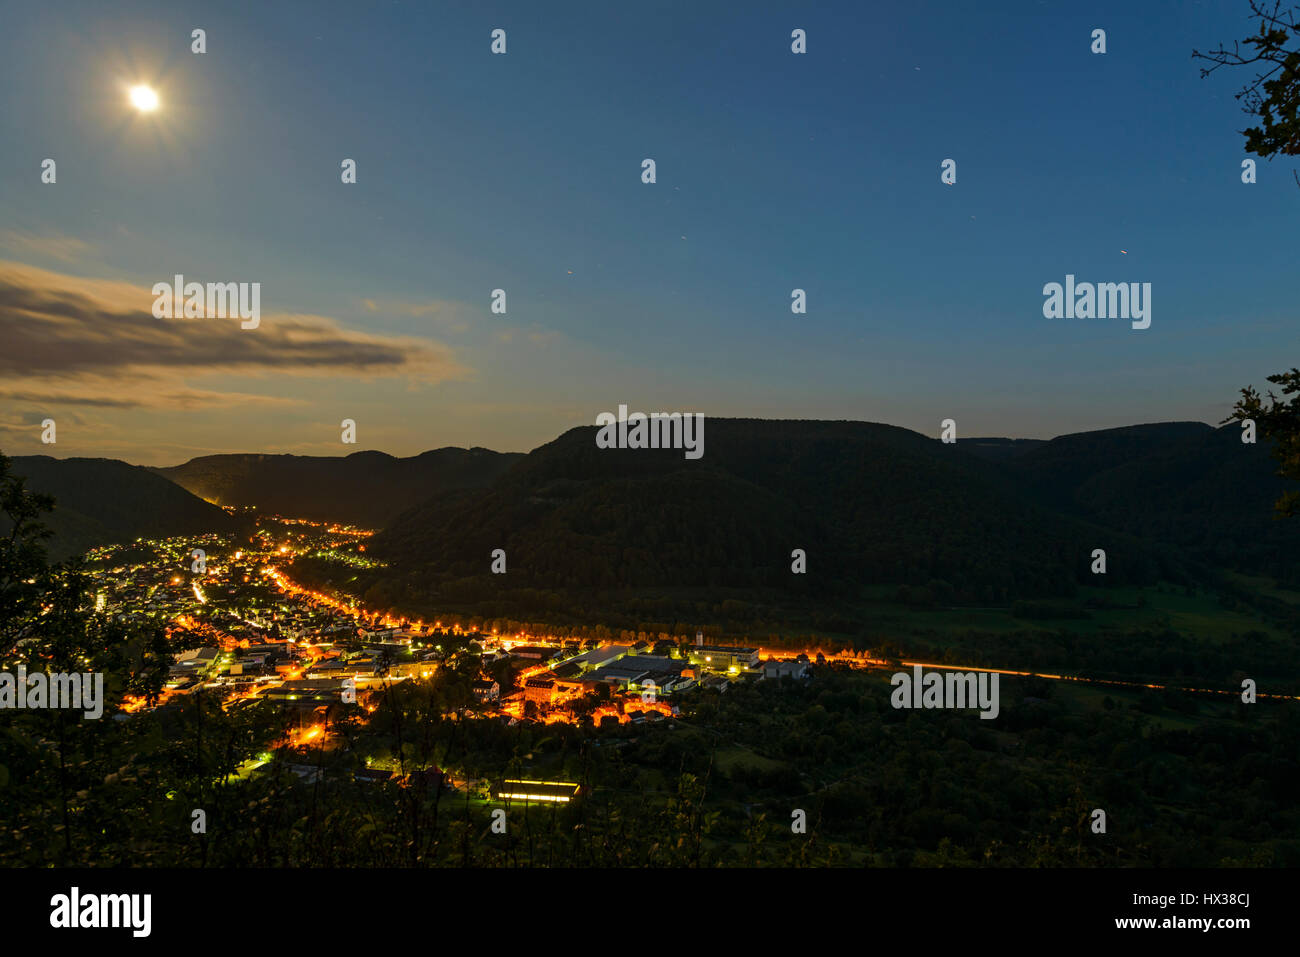 Lichtenstein, Swabian Alb in the night. View on the city. Baden Wurttemberg, Germany - Stock Image